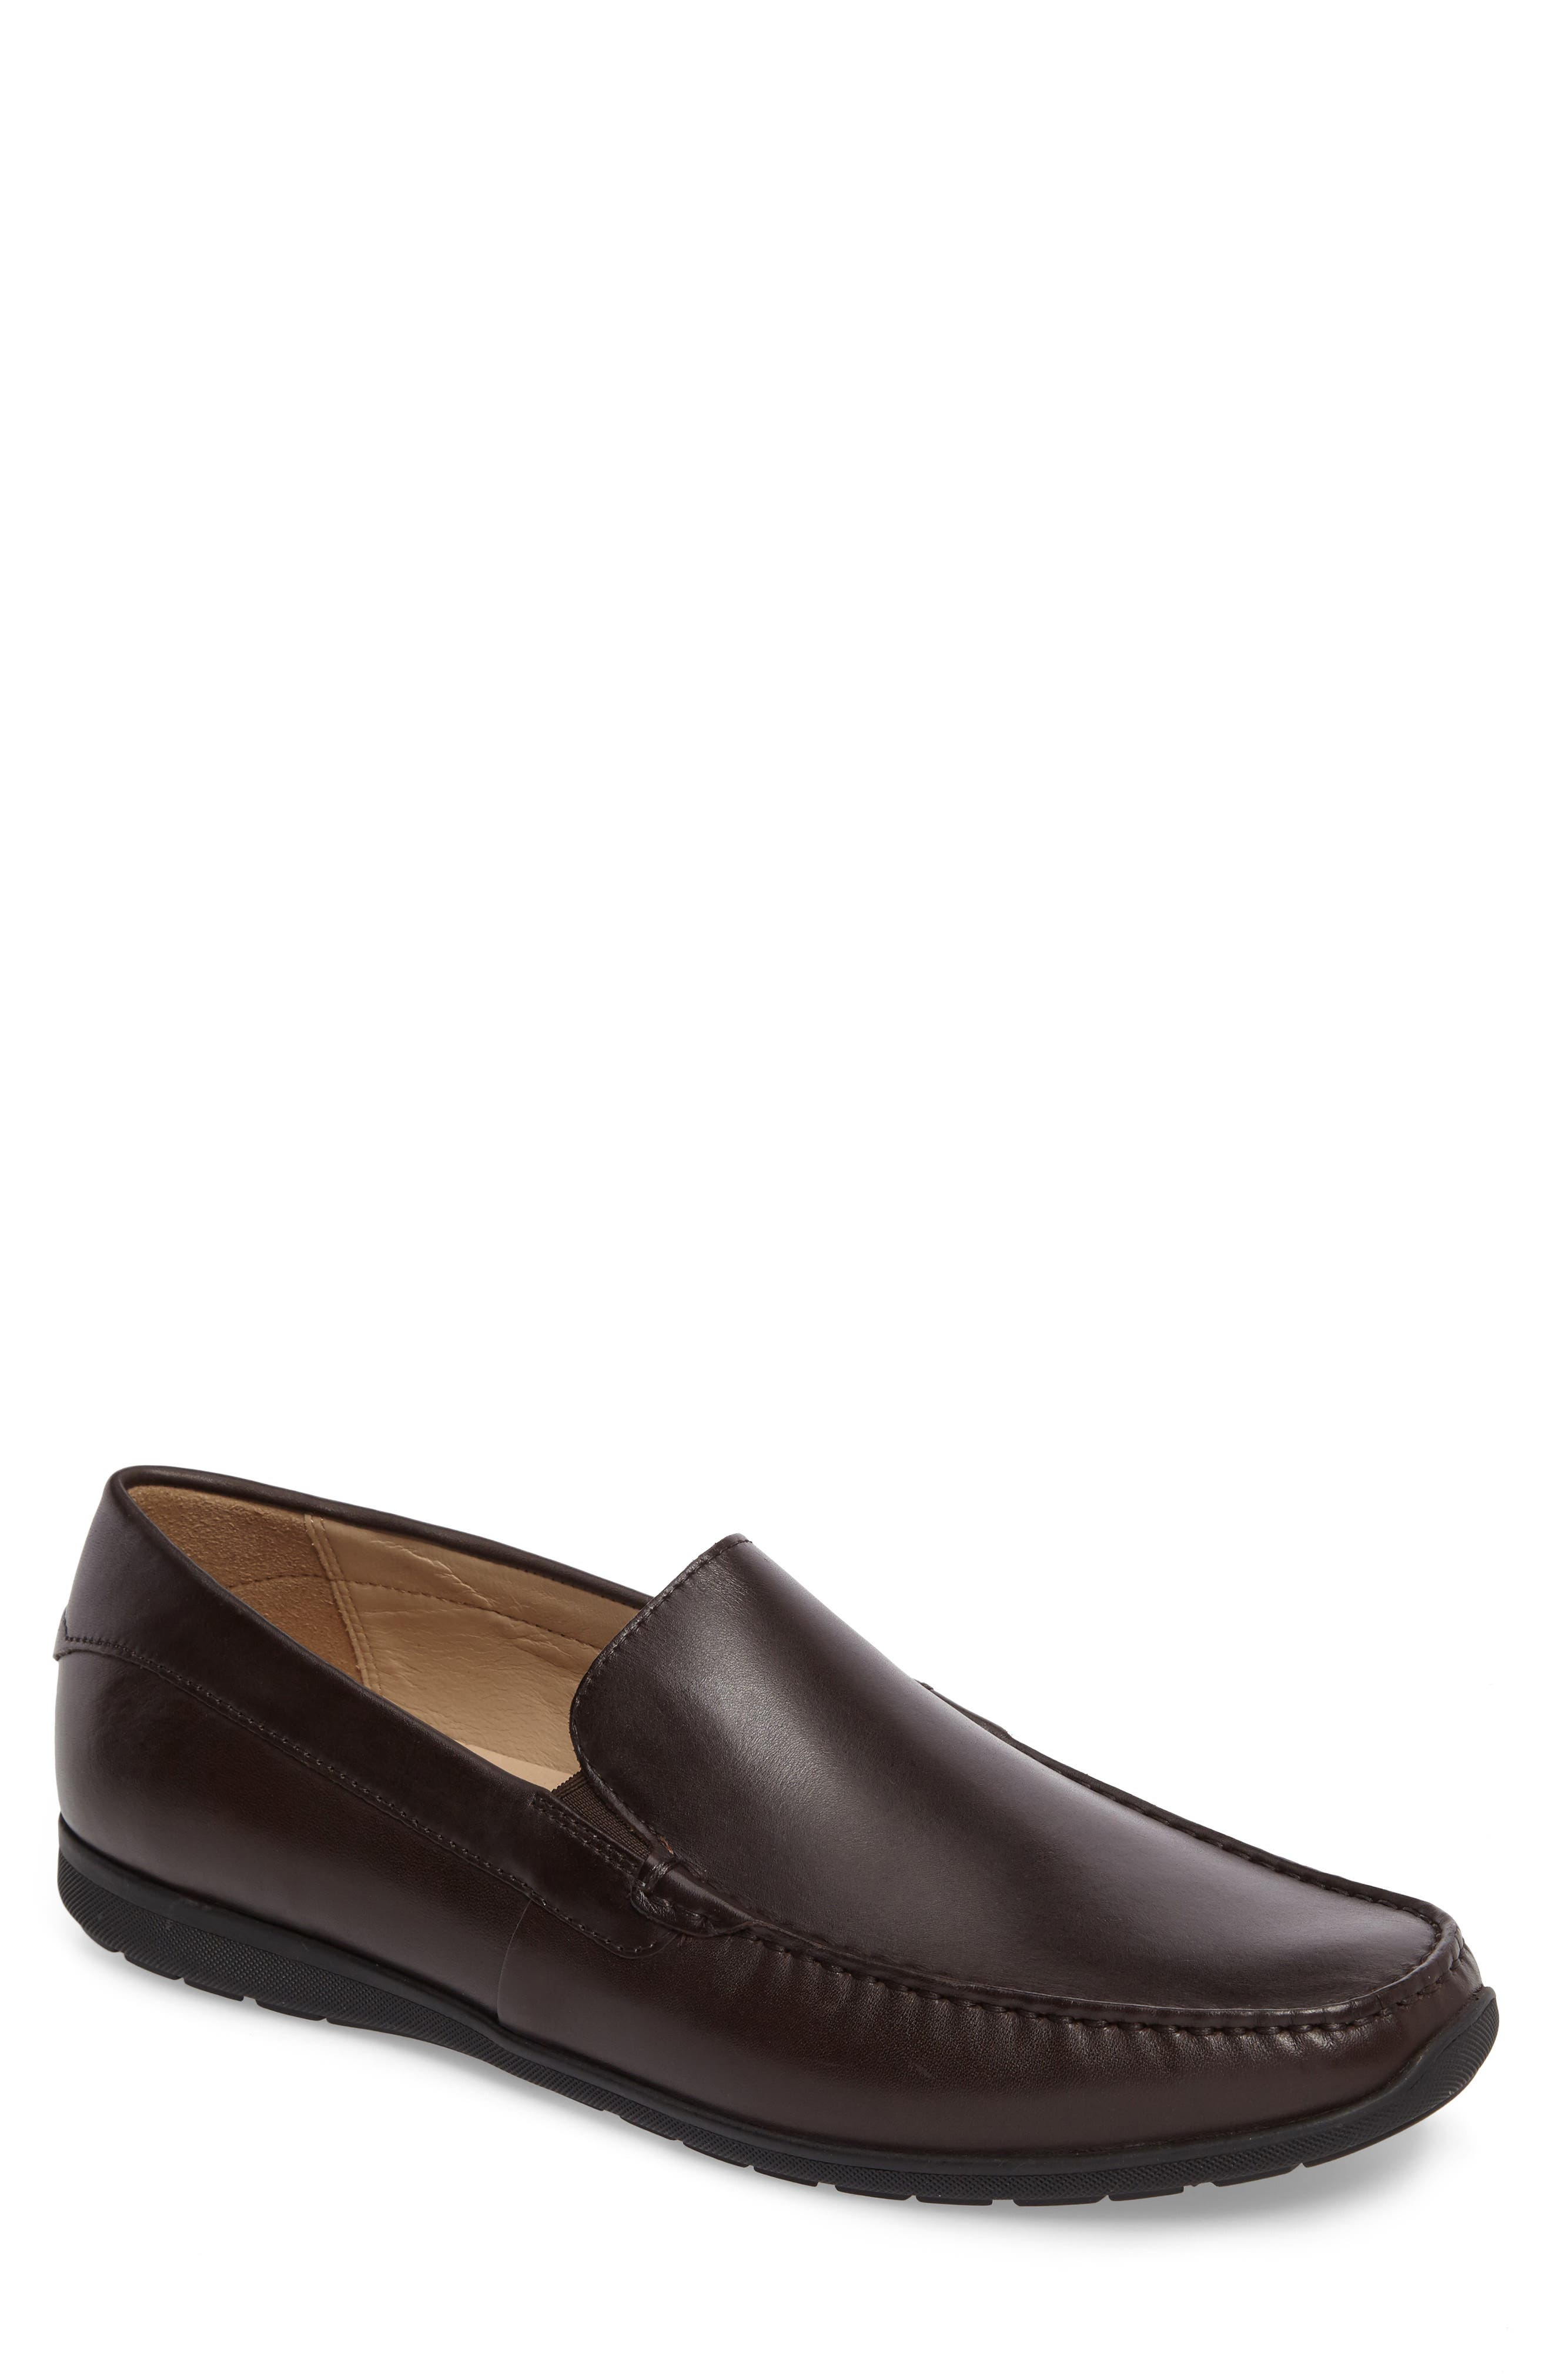 ECCO Classic Loafer (Men)